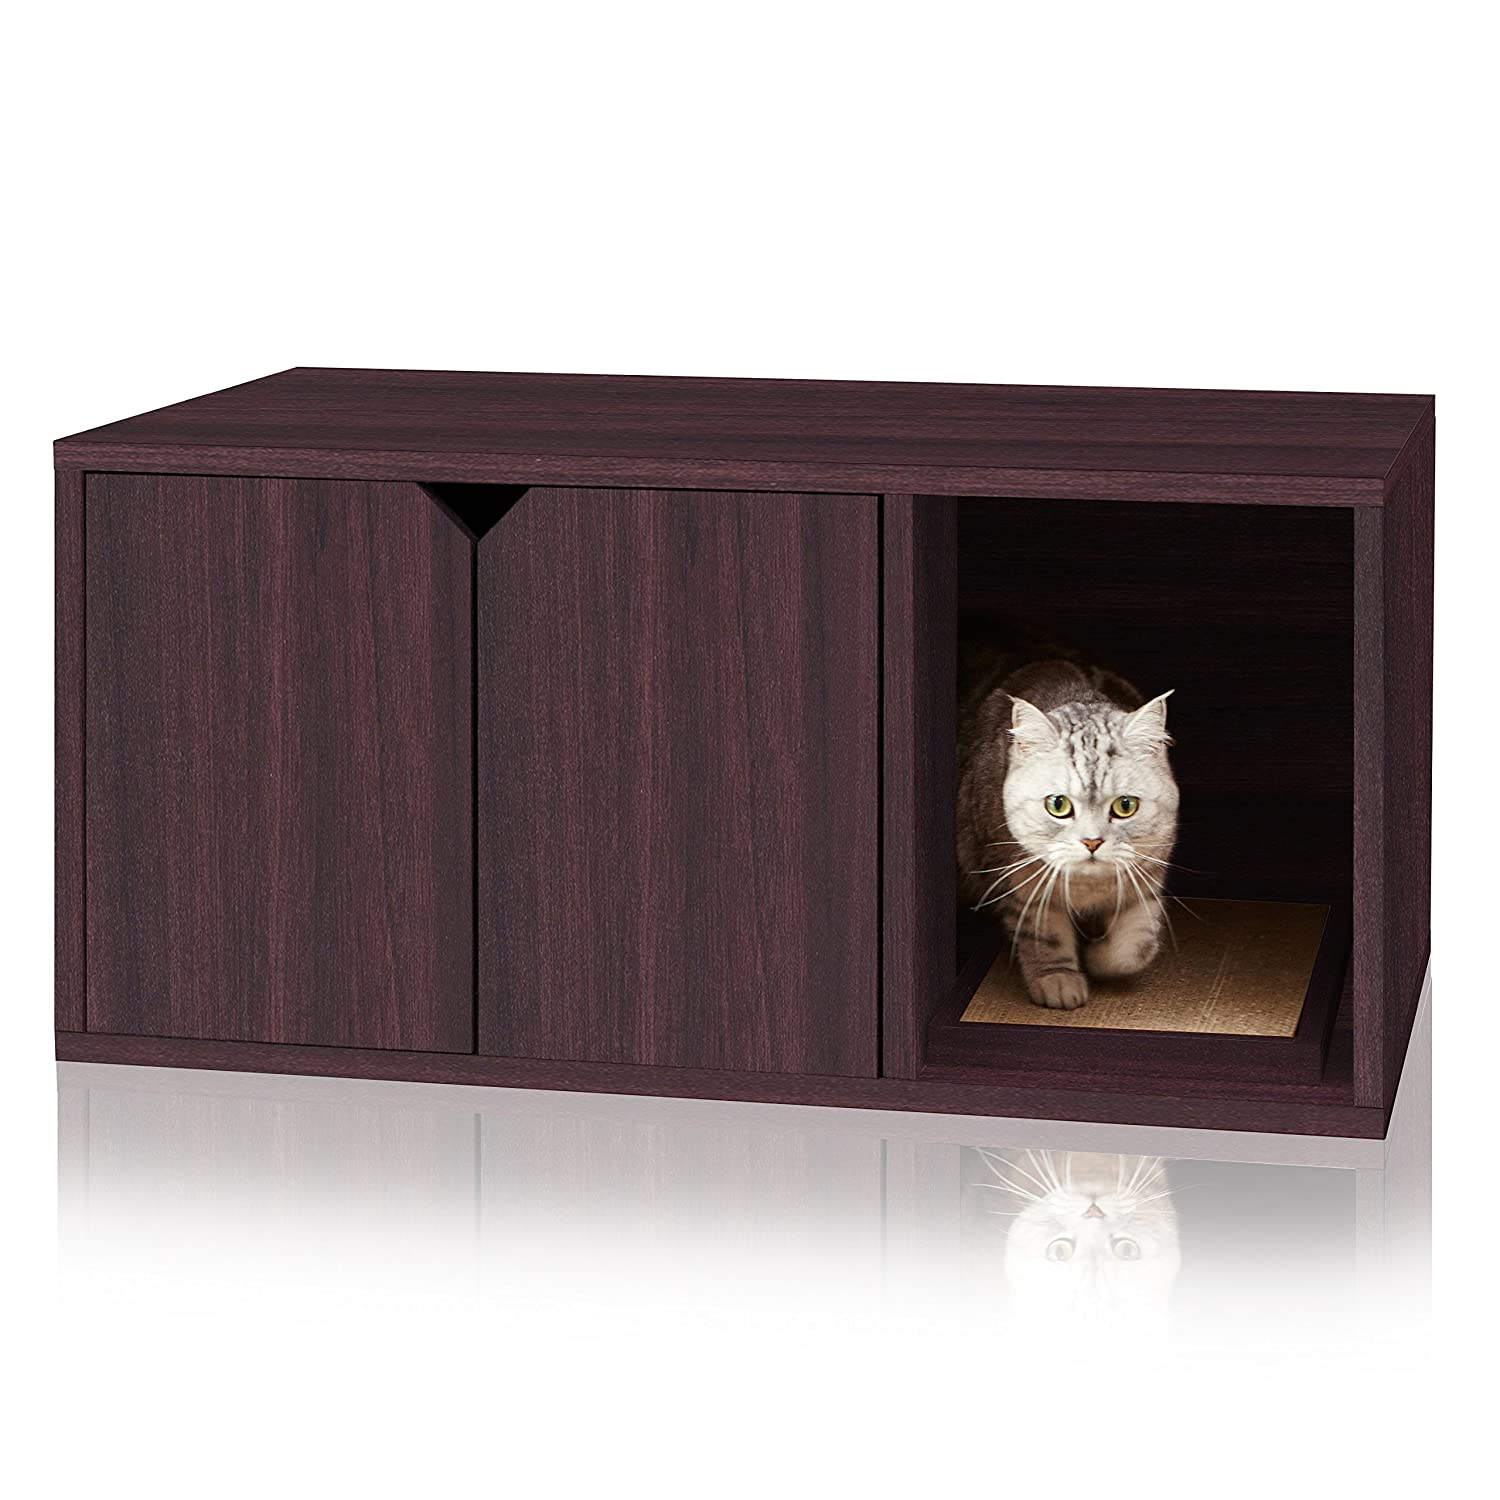 Buy Way Basics Eco Friendly Modern Cat Litter Box Furniture Made